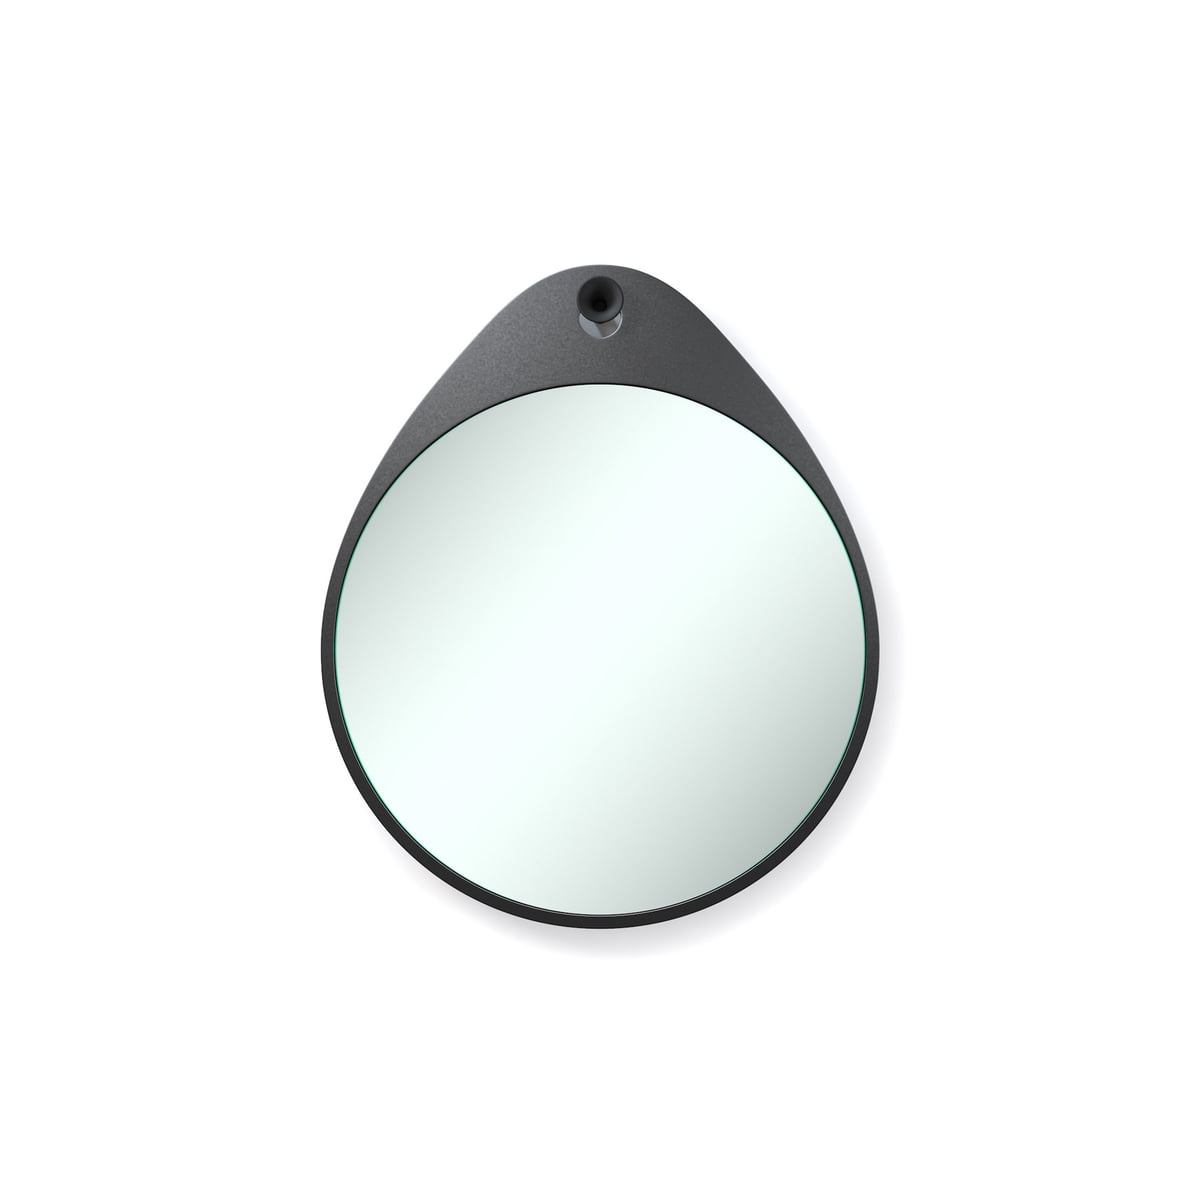 Miroir the egg de rizz connox for Miroir in english